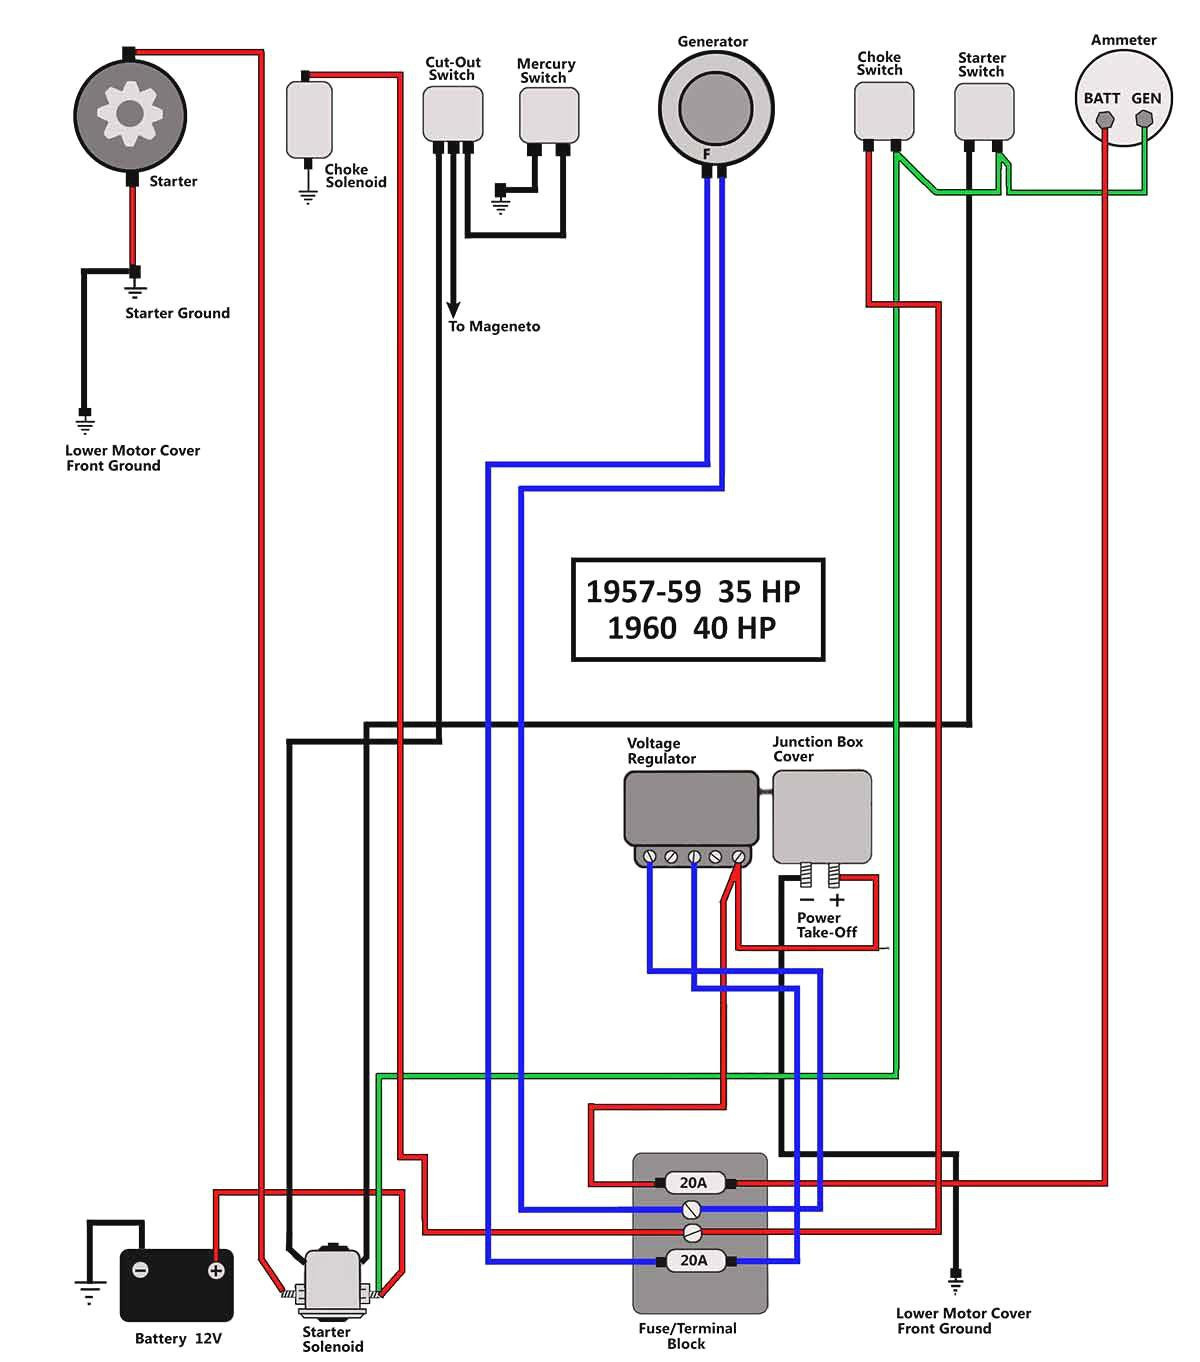 hight resolution of 50 hp mercury outboard wiring diagram mercury outboard wiring diagram ignition switch unique motor marine